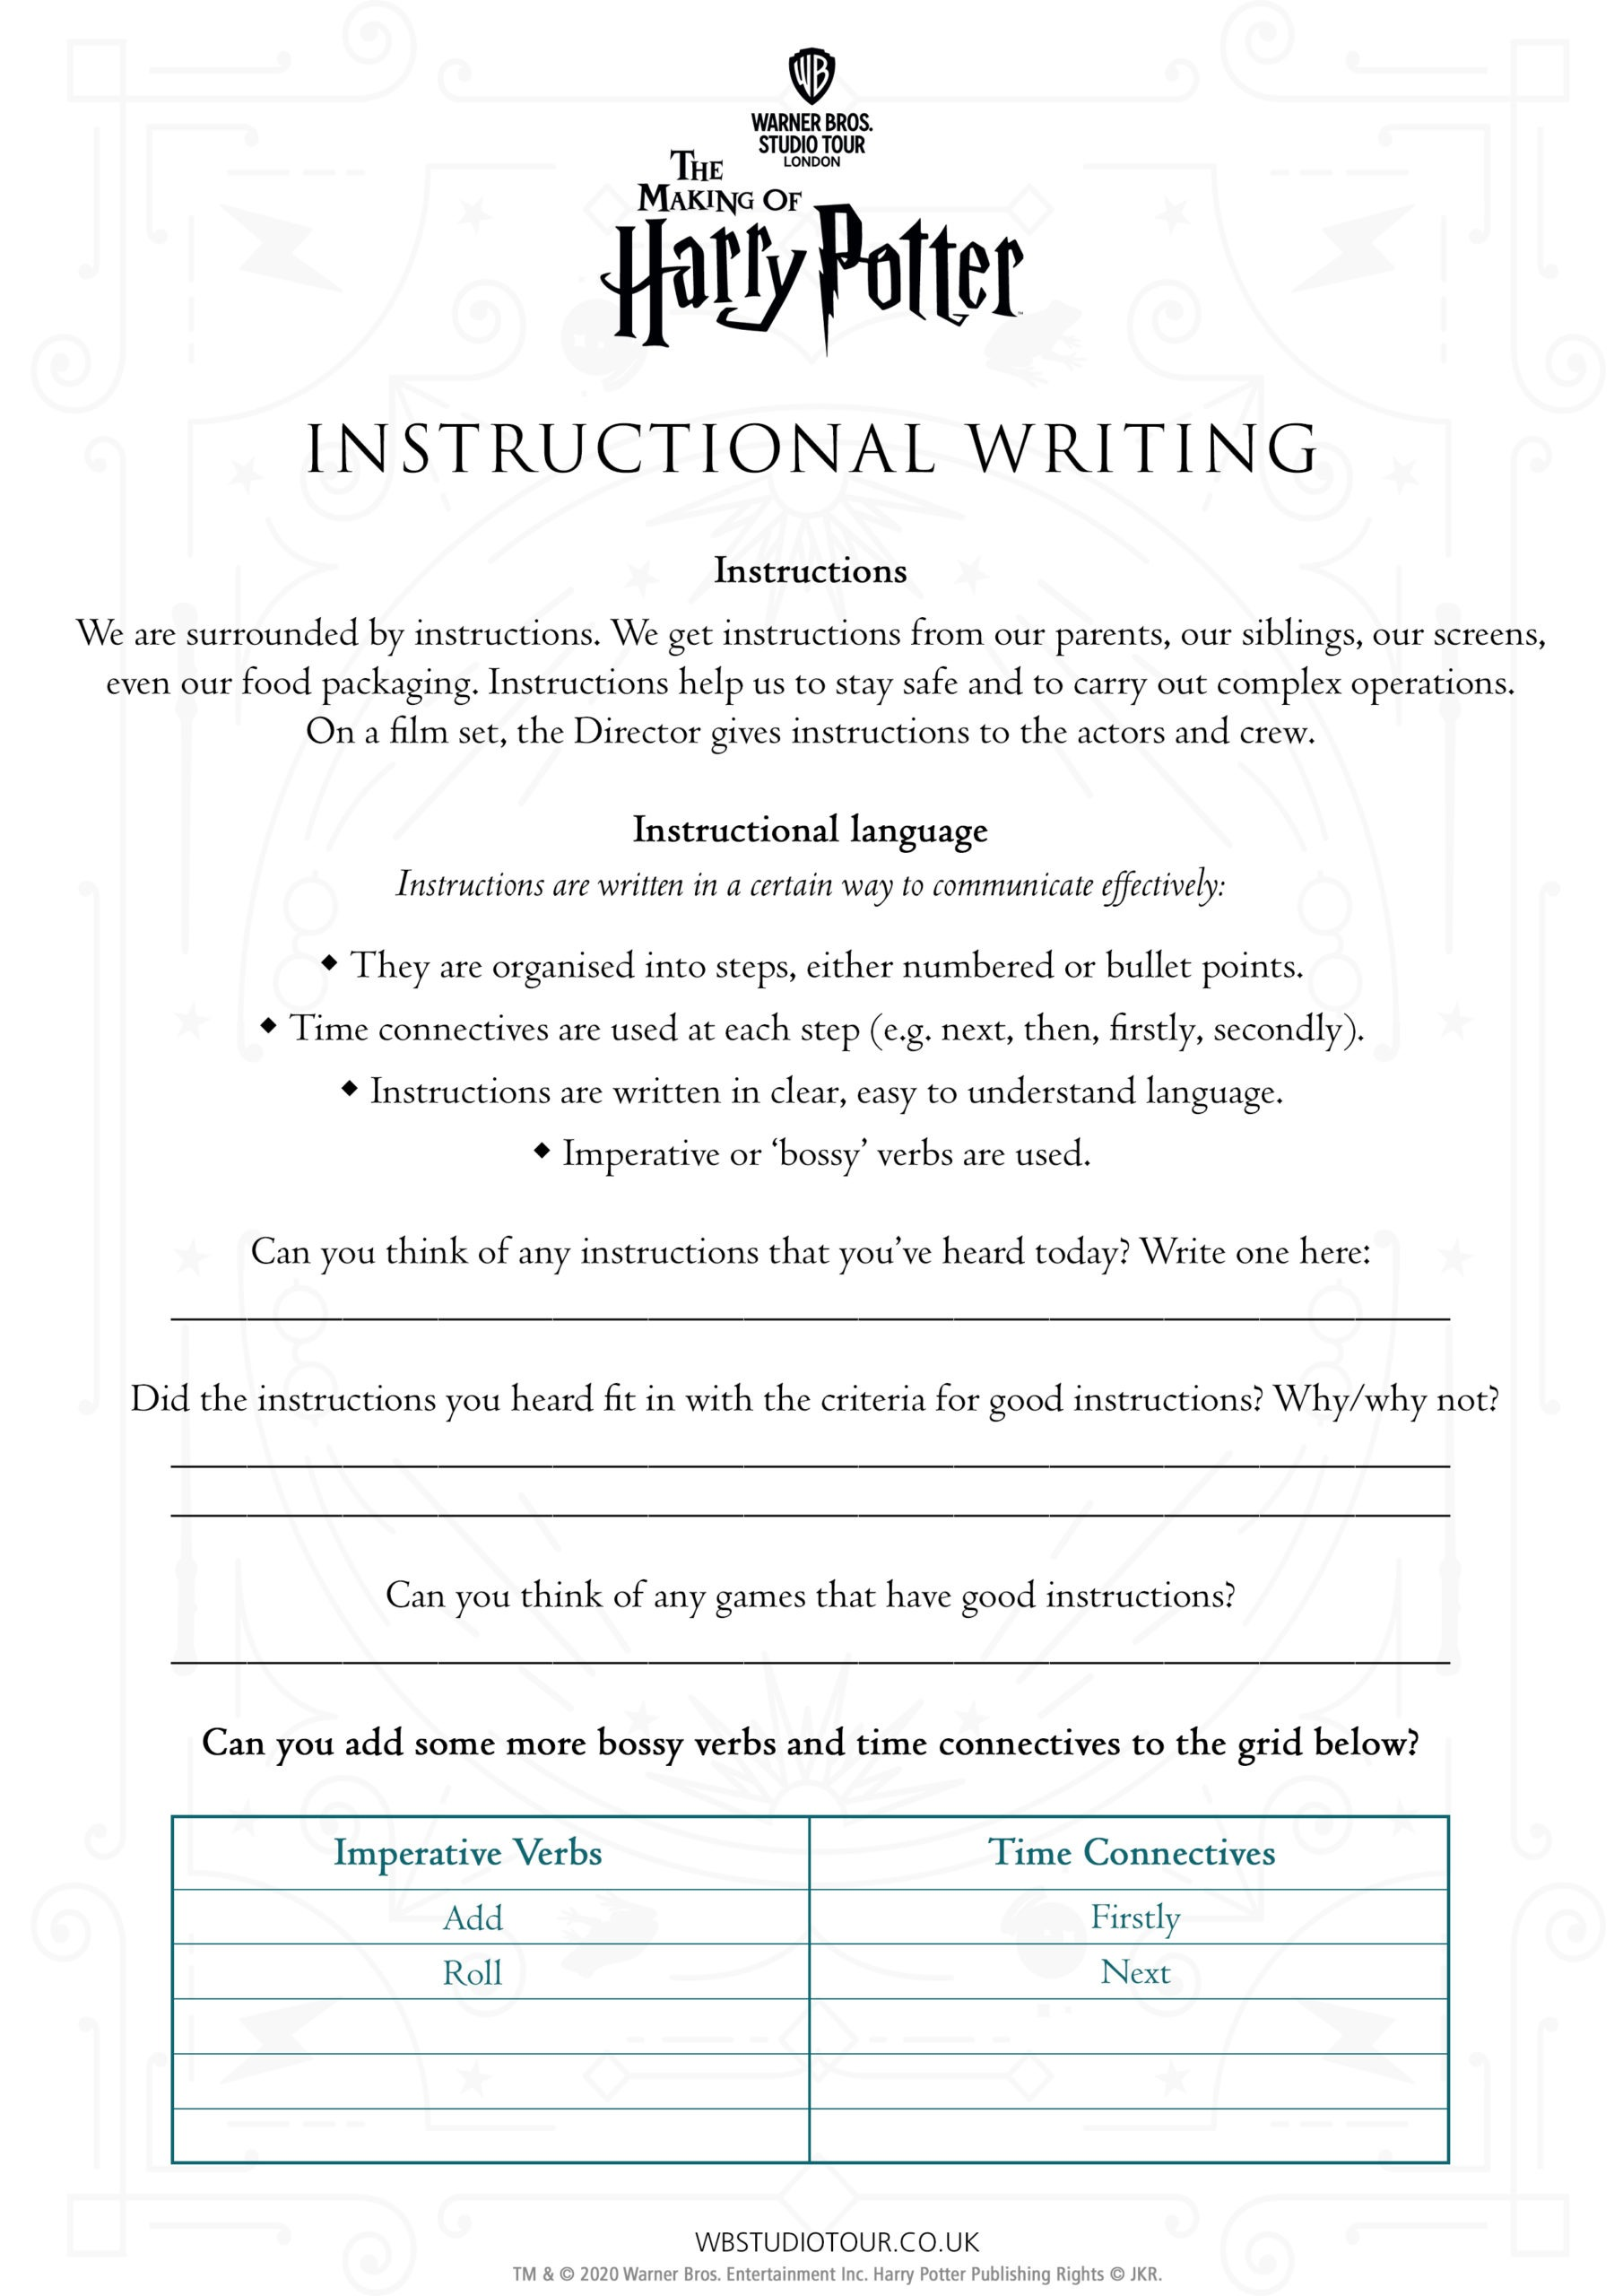 Instructional Writing Activity Sheet thumbnail